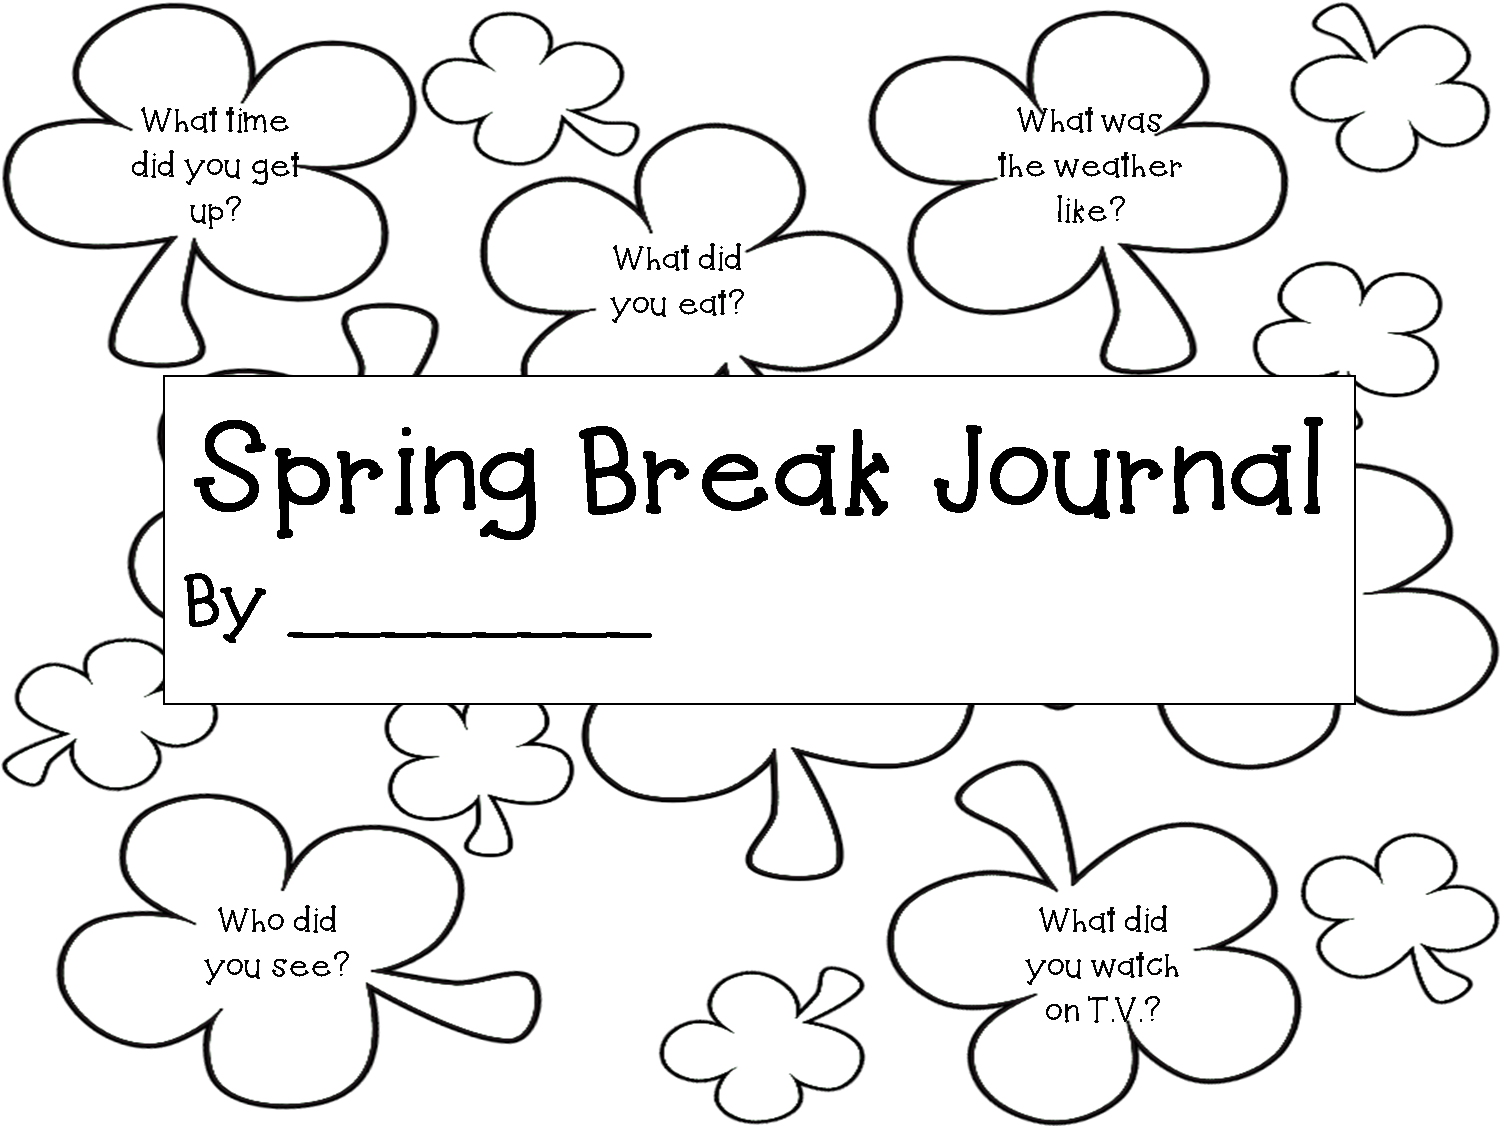 TeachersHQ: Spring Break homework??